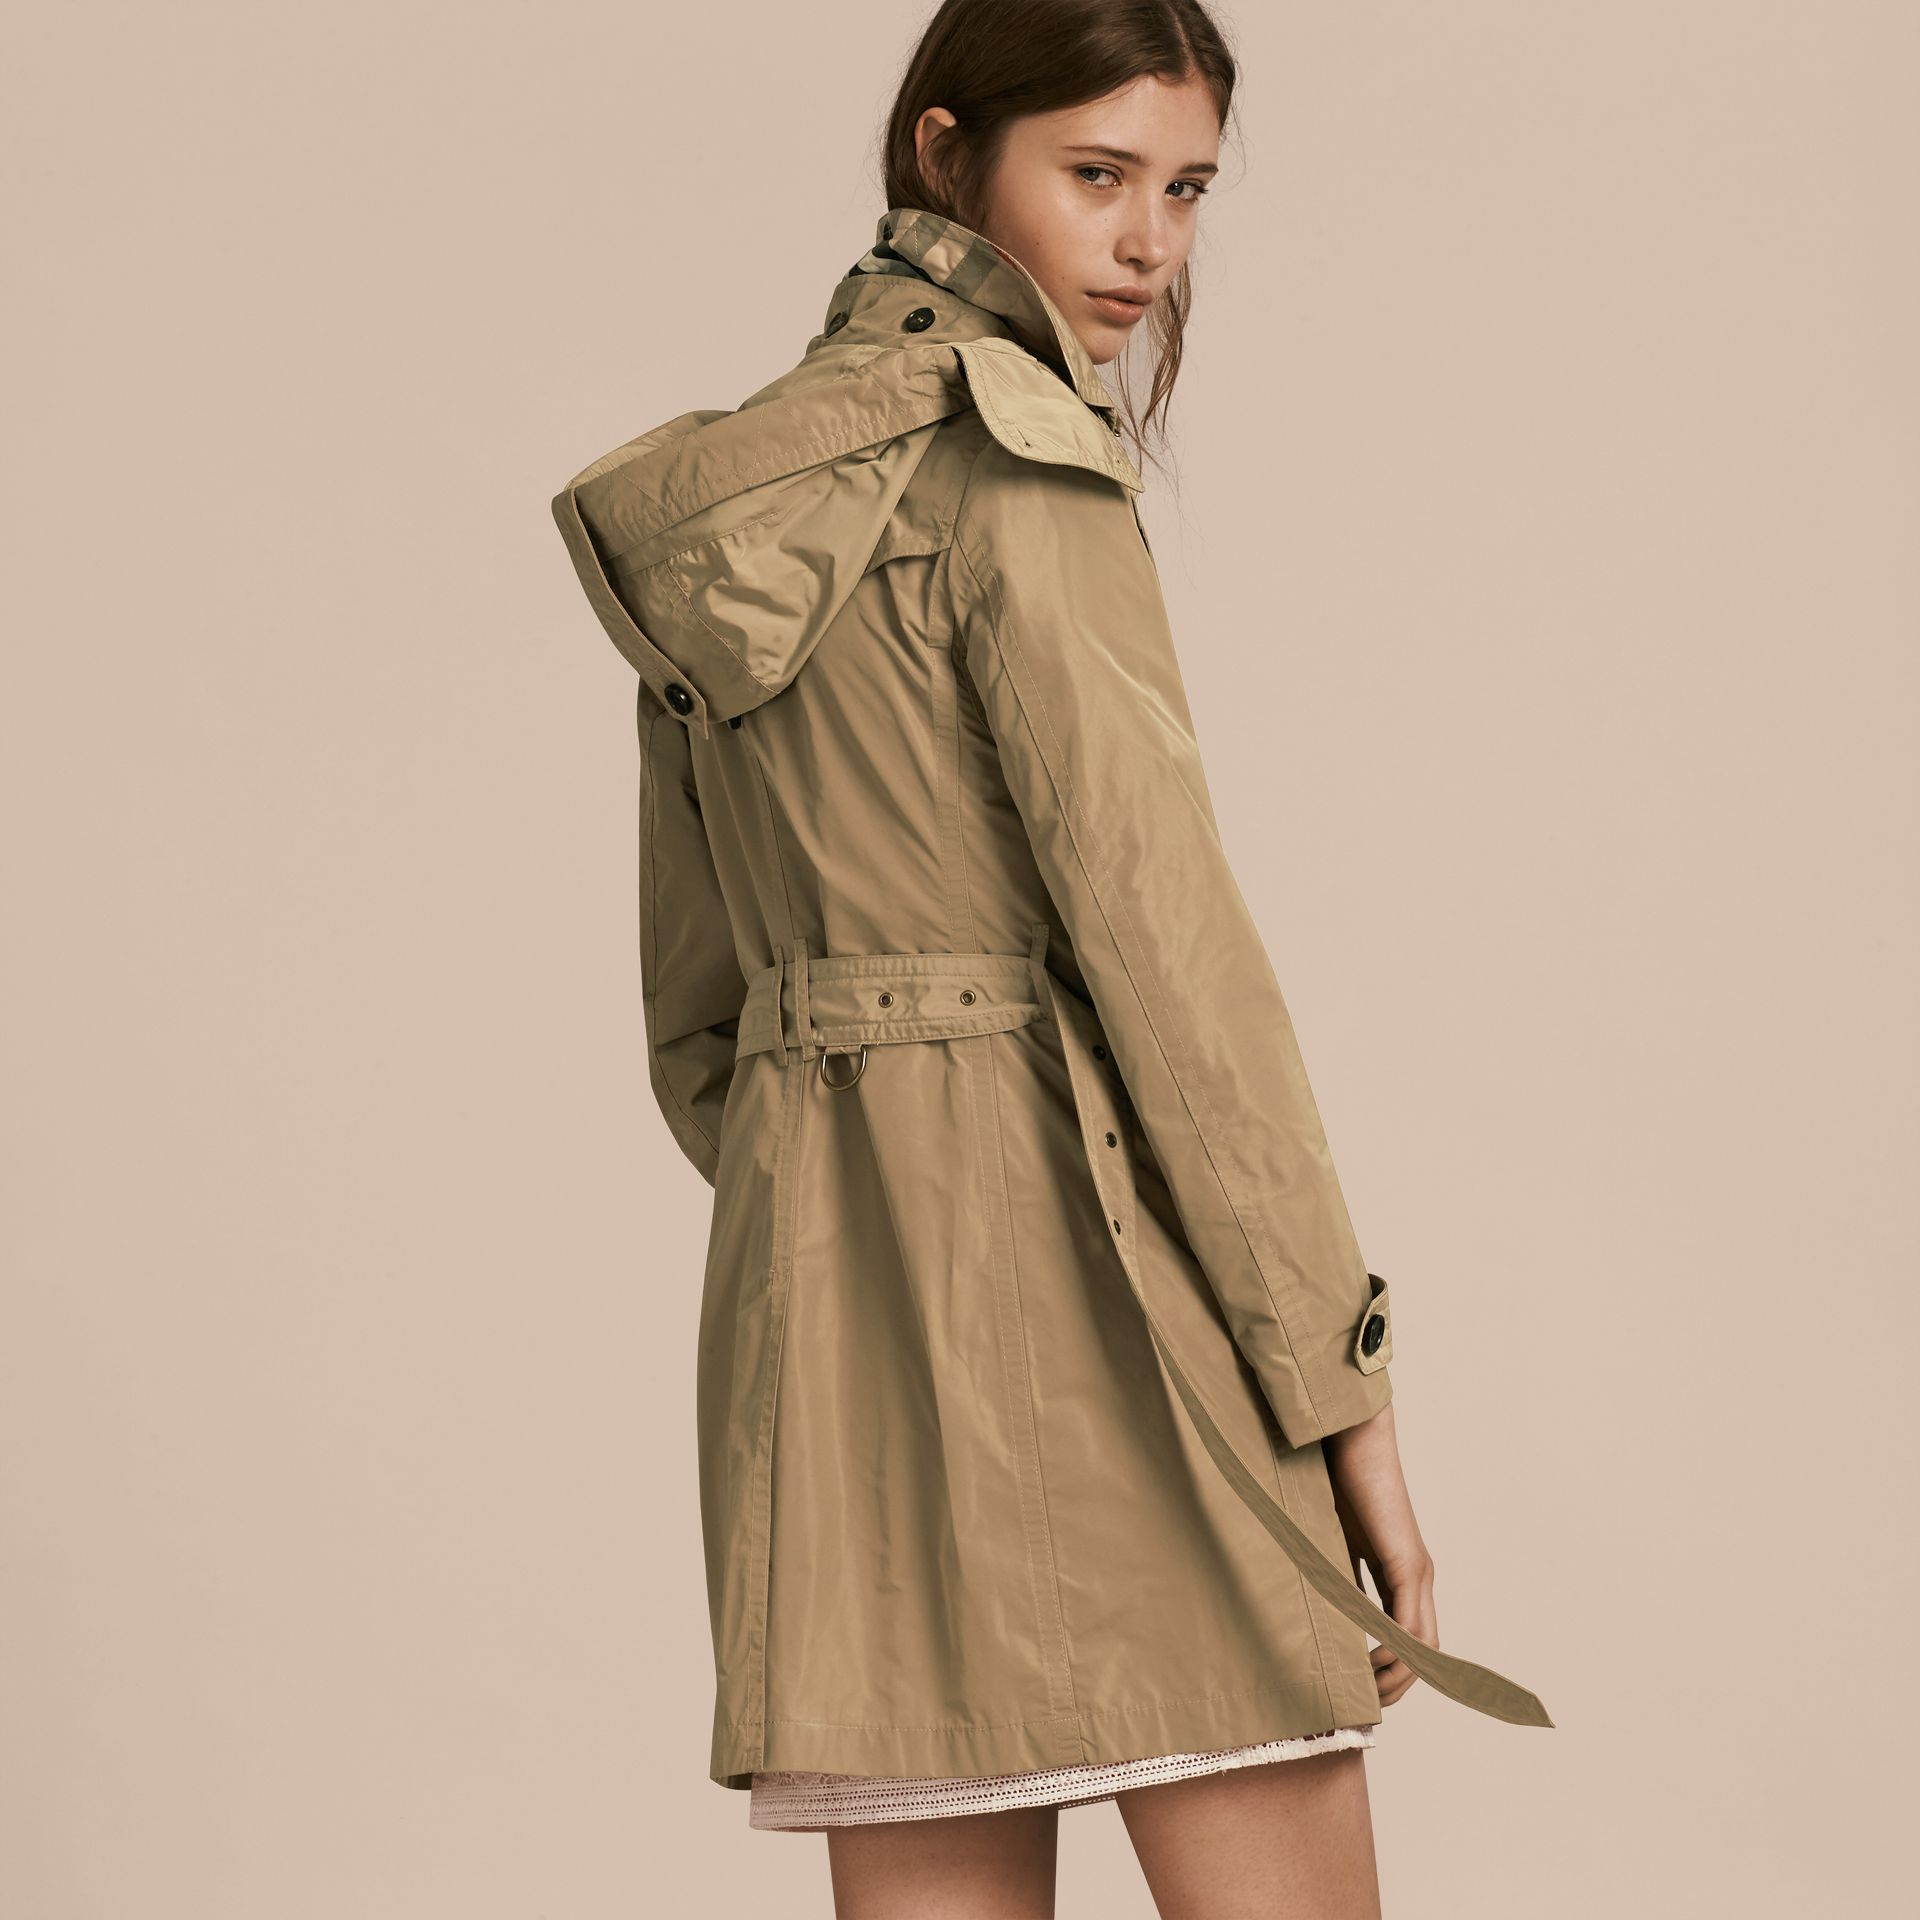 Taffeta Trench Coat with Detachable Hood in Sisal - Women | Burberry - gallery image 3